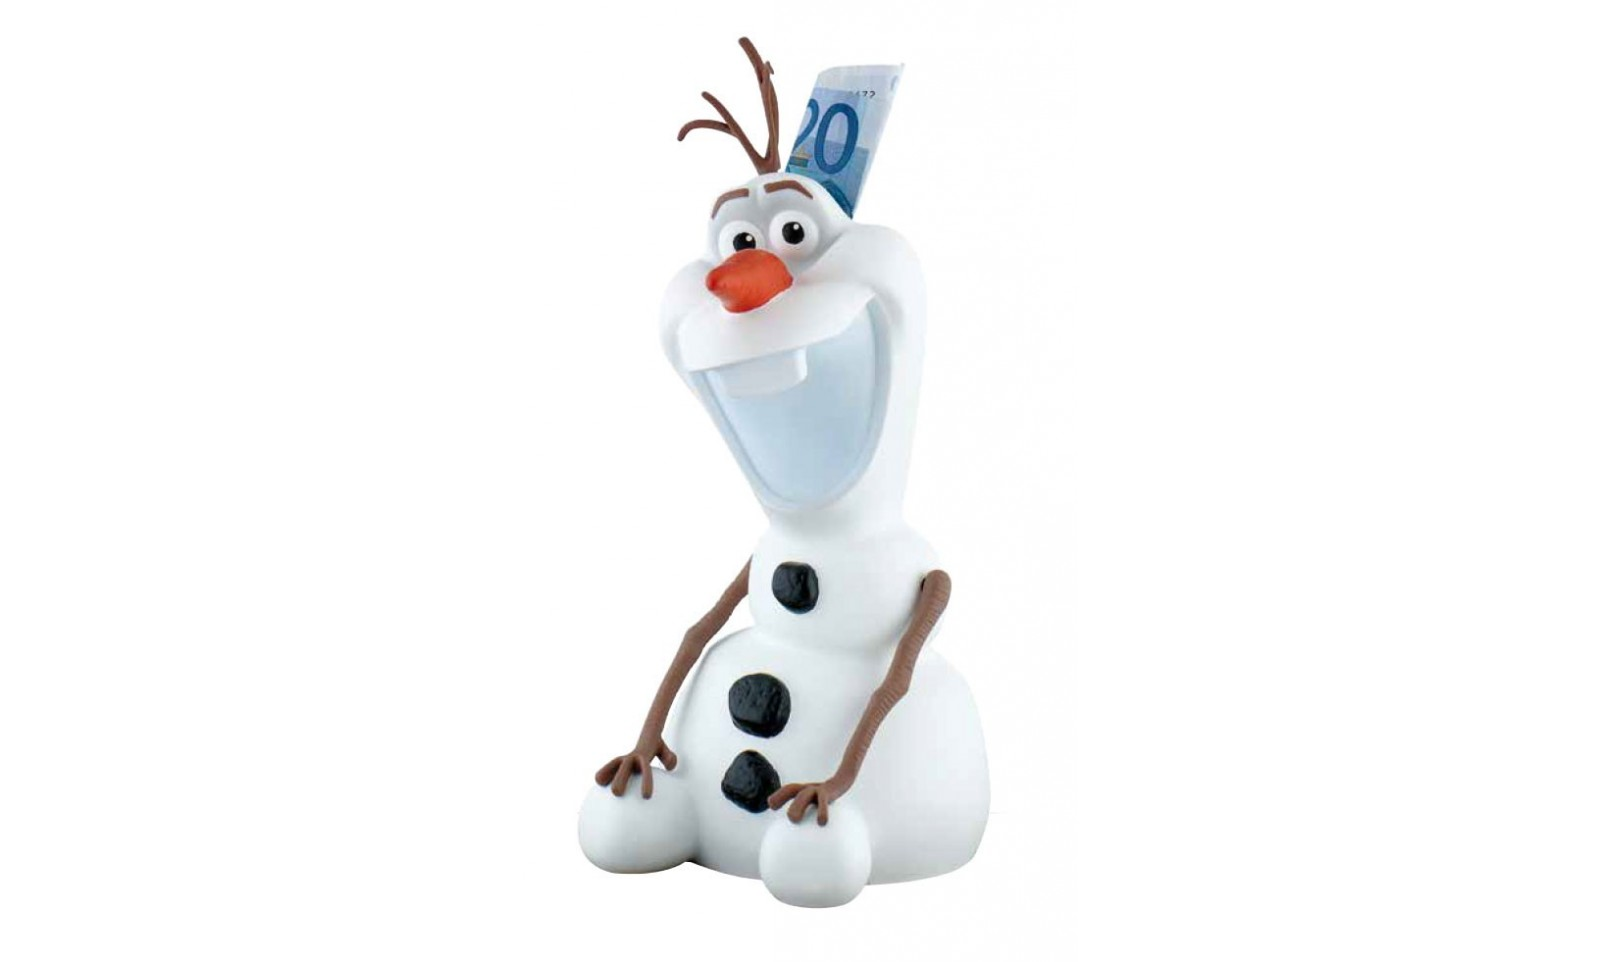 frozen olaf figure bank 24 cm disney 39 s movie film goodies. Black Bedroom Furniture Sets. Home Design Ideas